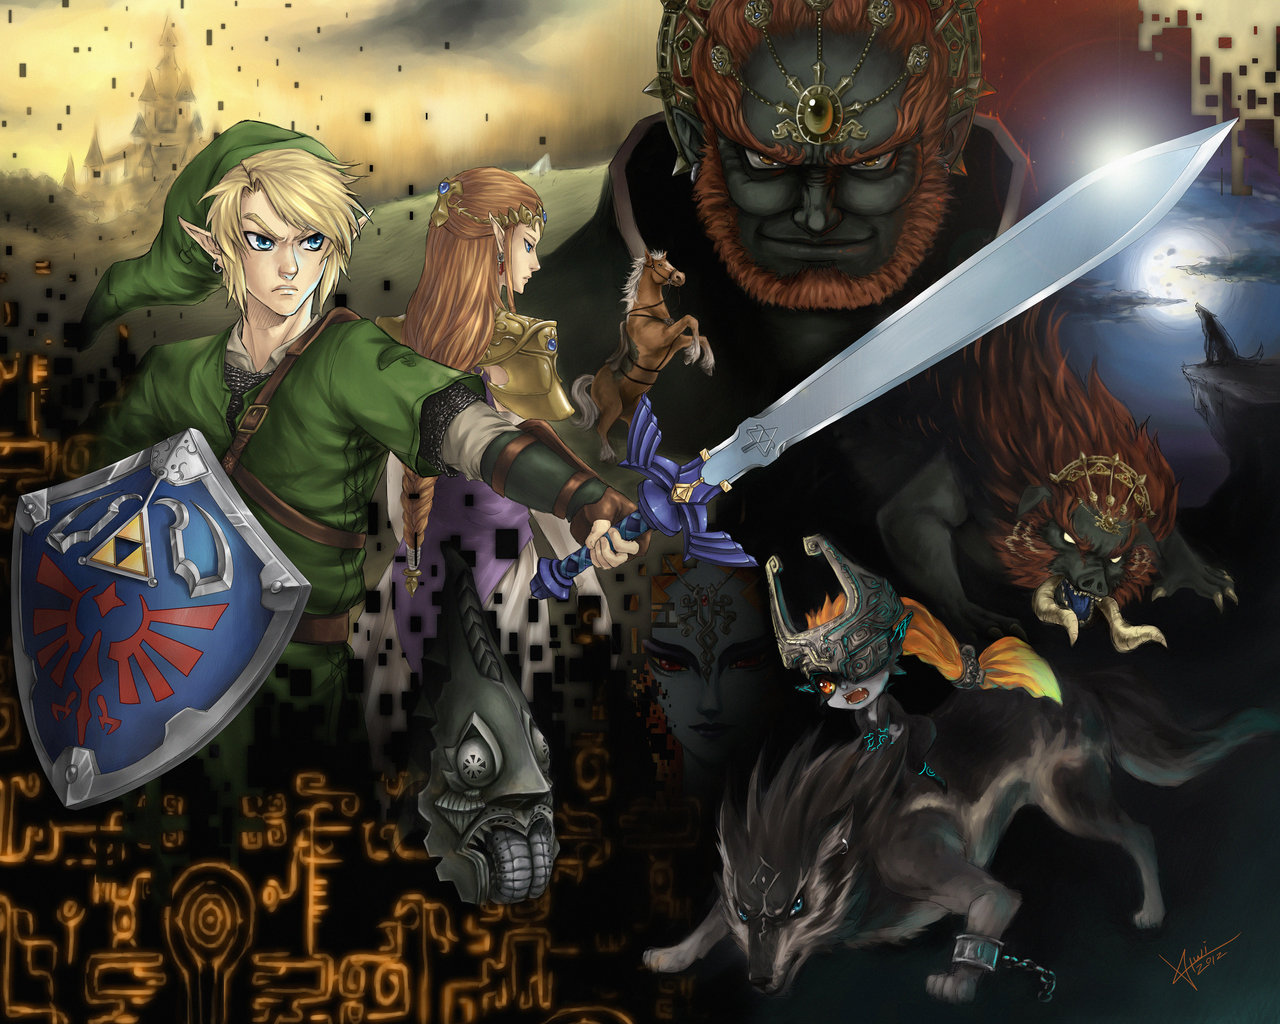 Link Twilight Princess Wallpaper Twilight princess by kiwi san 1280x1024